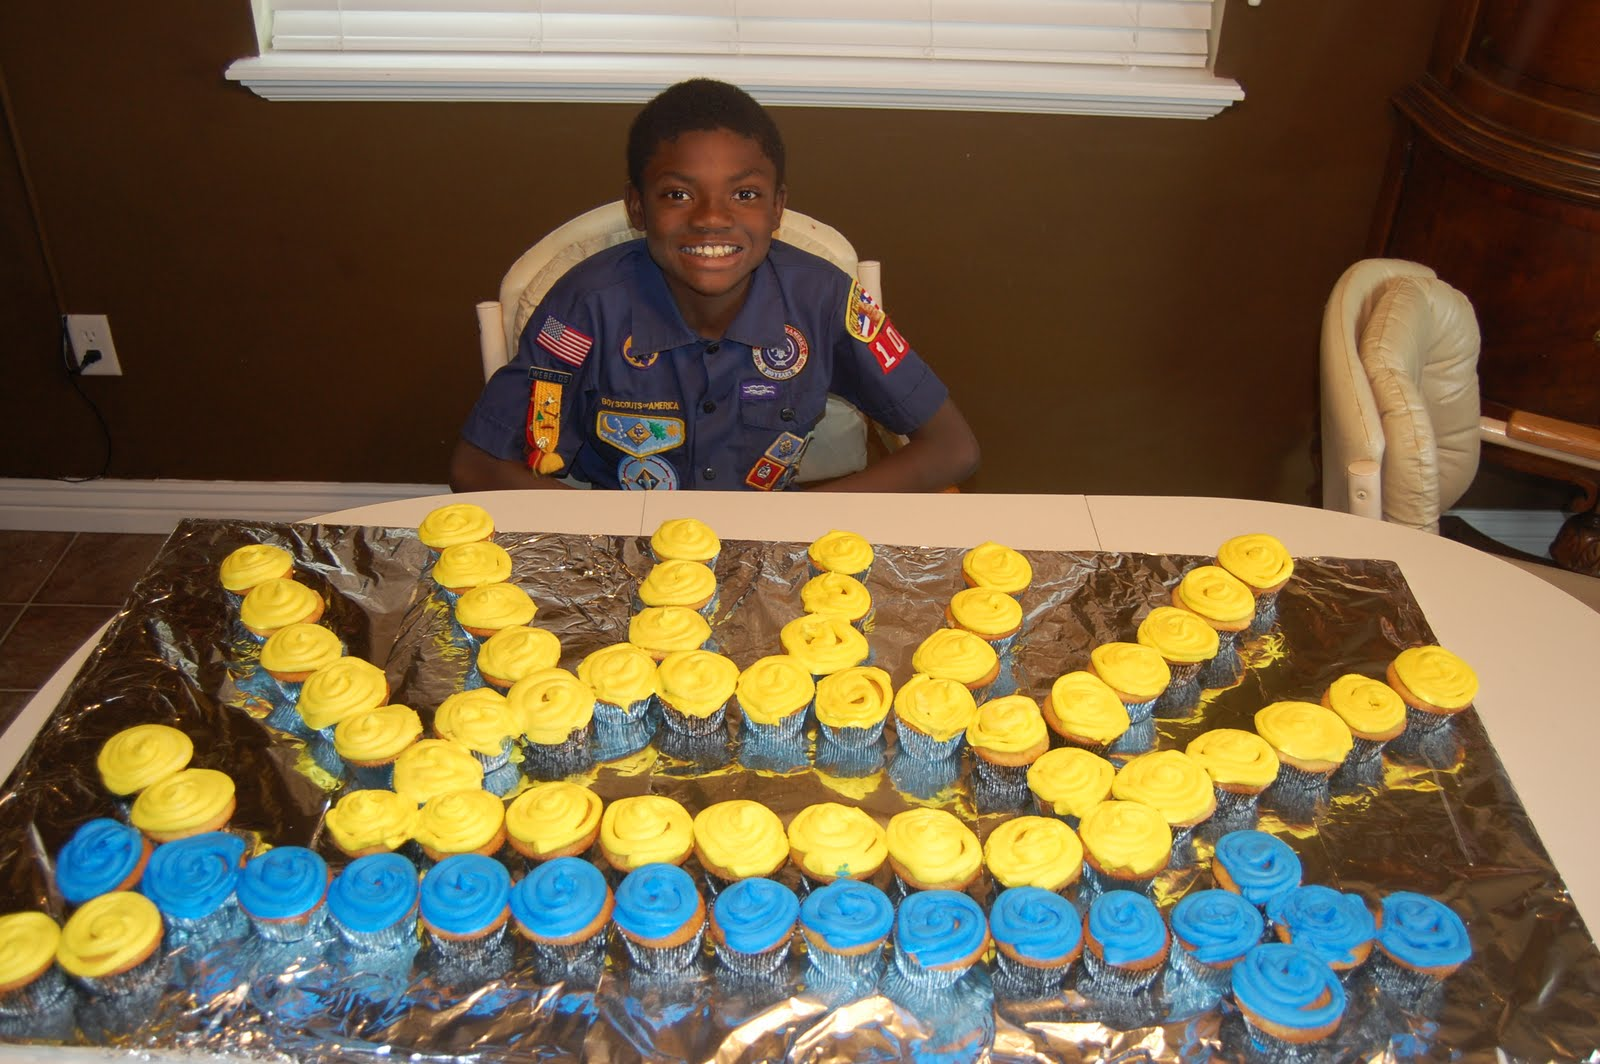 ... For Of Refreshments Ceremony Arrow Light Boy Blue Ideas Scout Gold  Party Banquet Invitations And Centerpieces ...